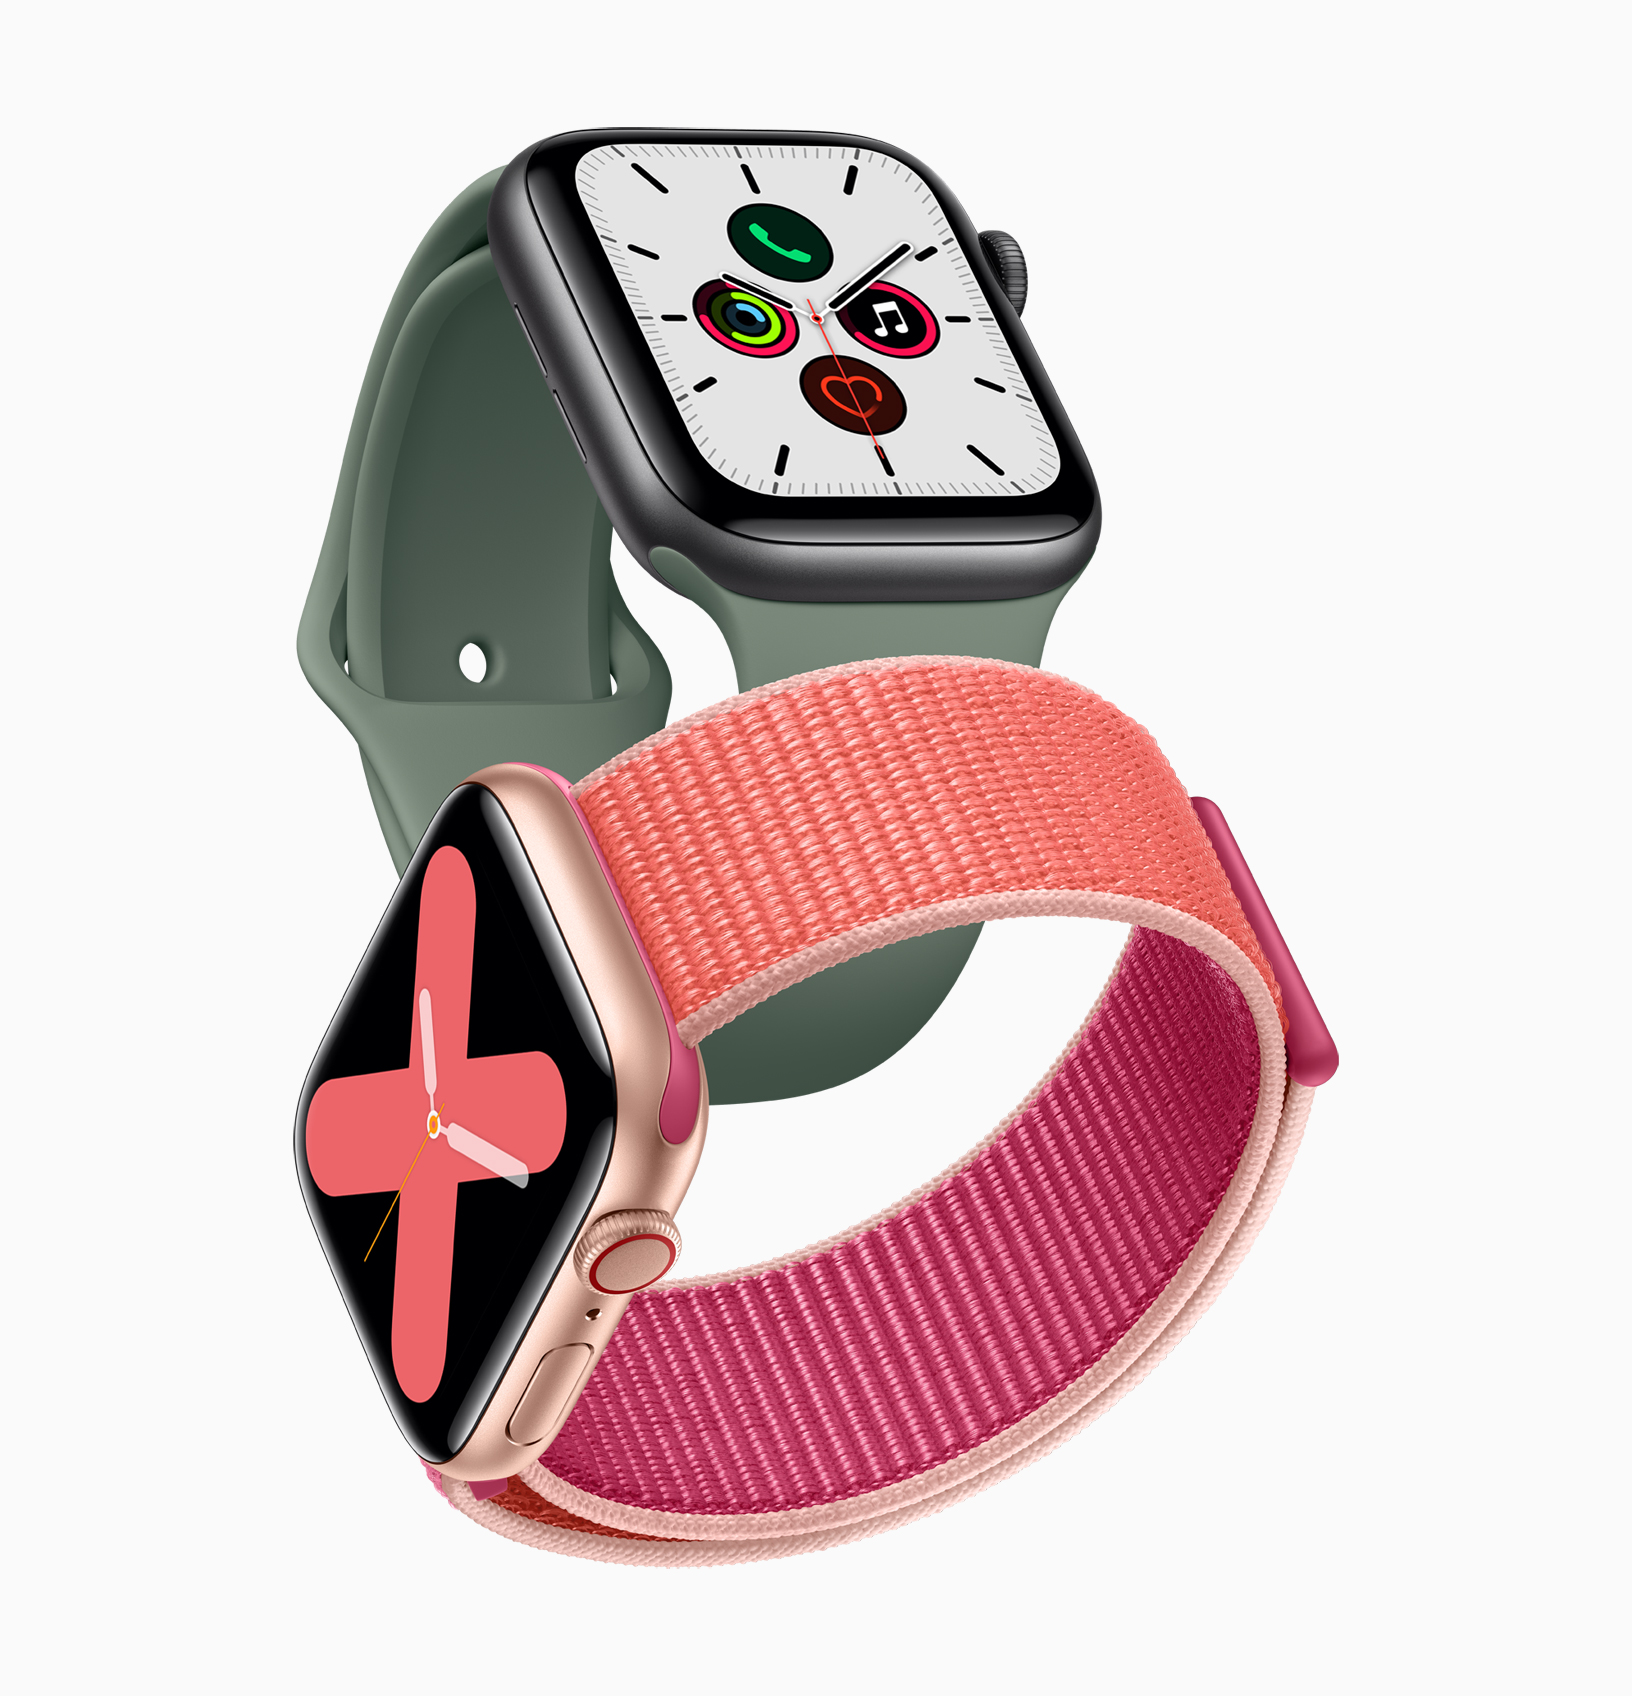 Save $15-$32 on Apple Watch Series 5 models at Abt Electronics